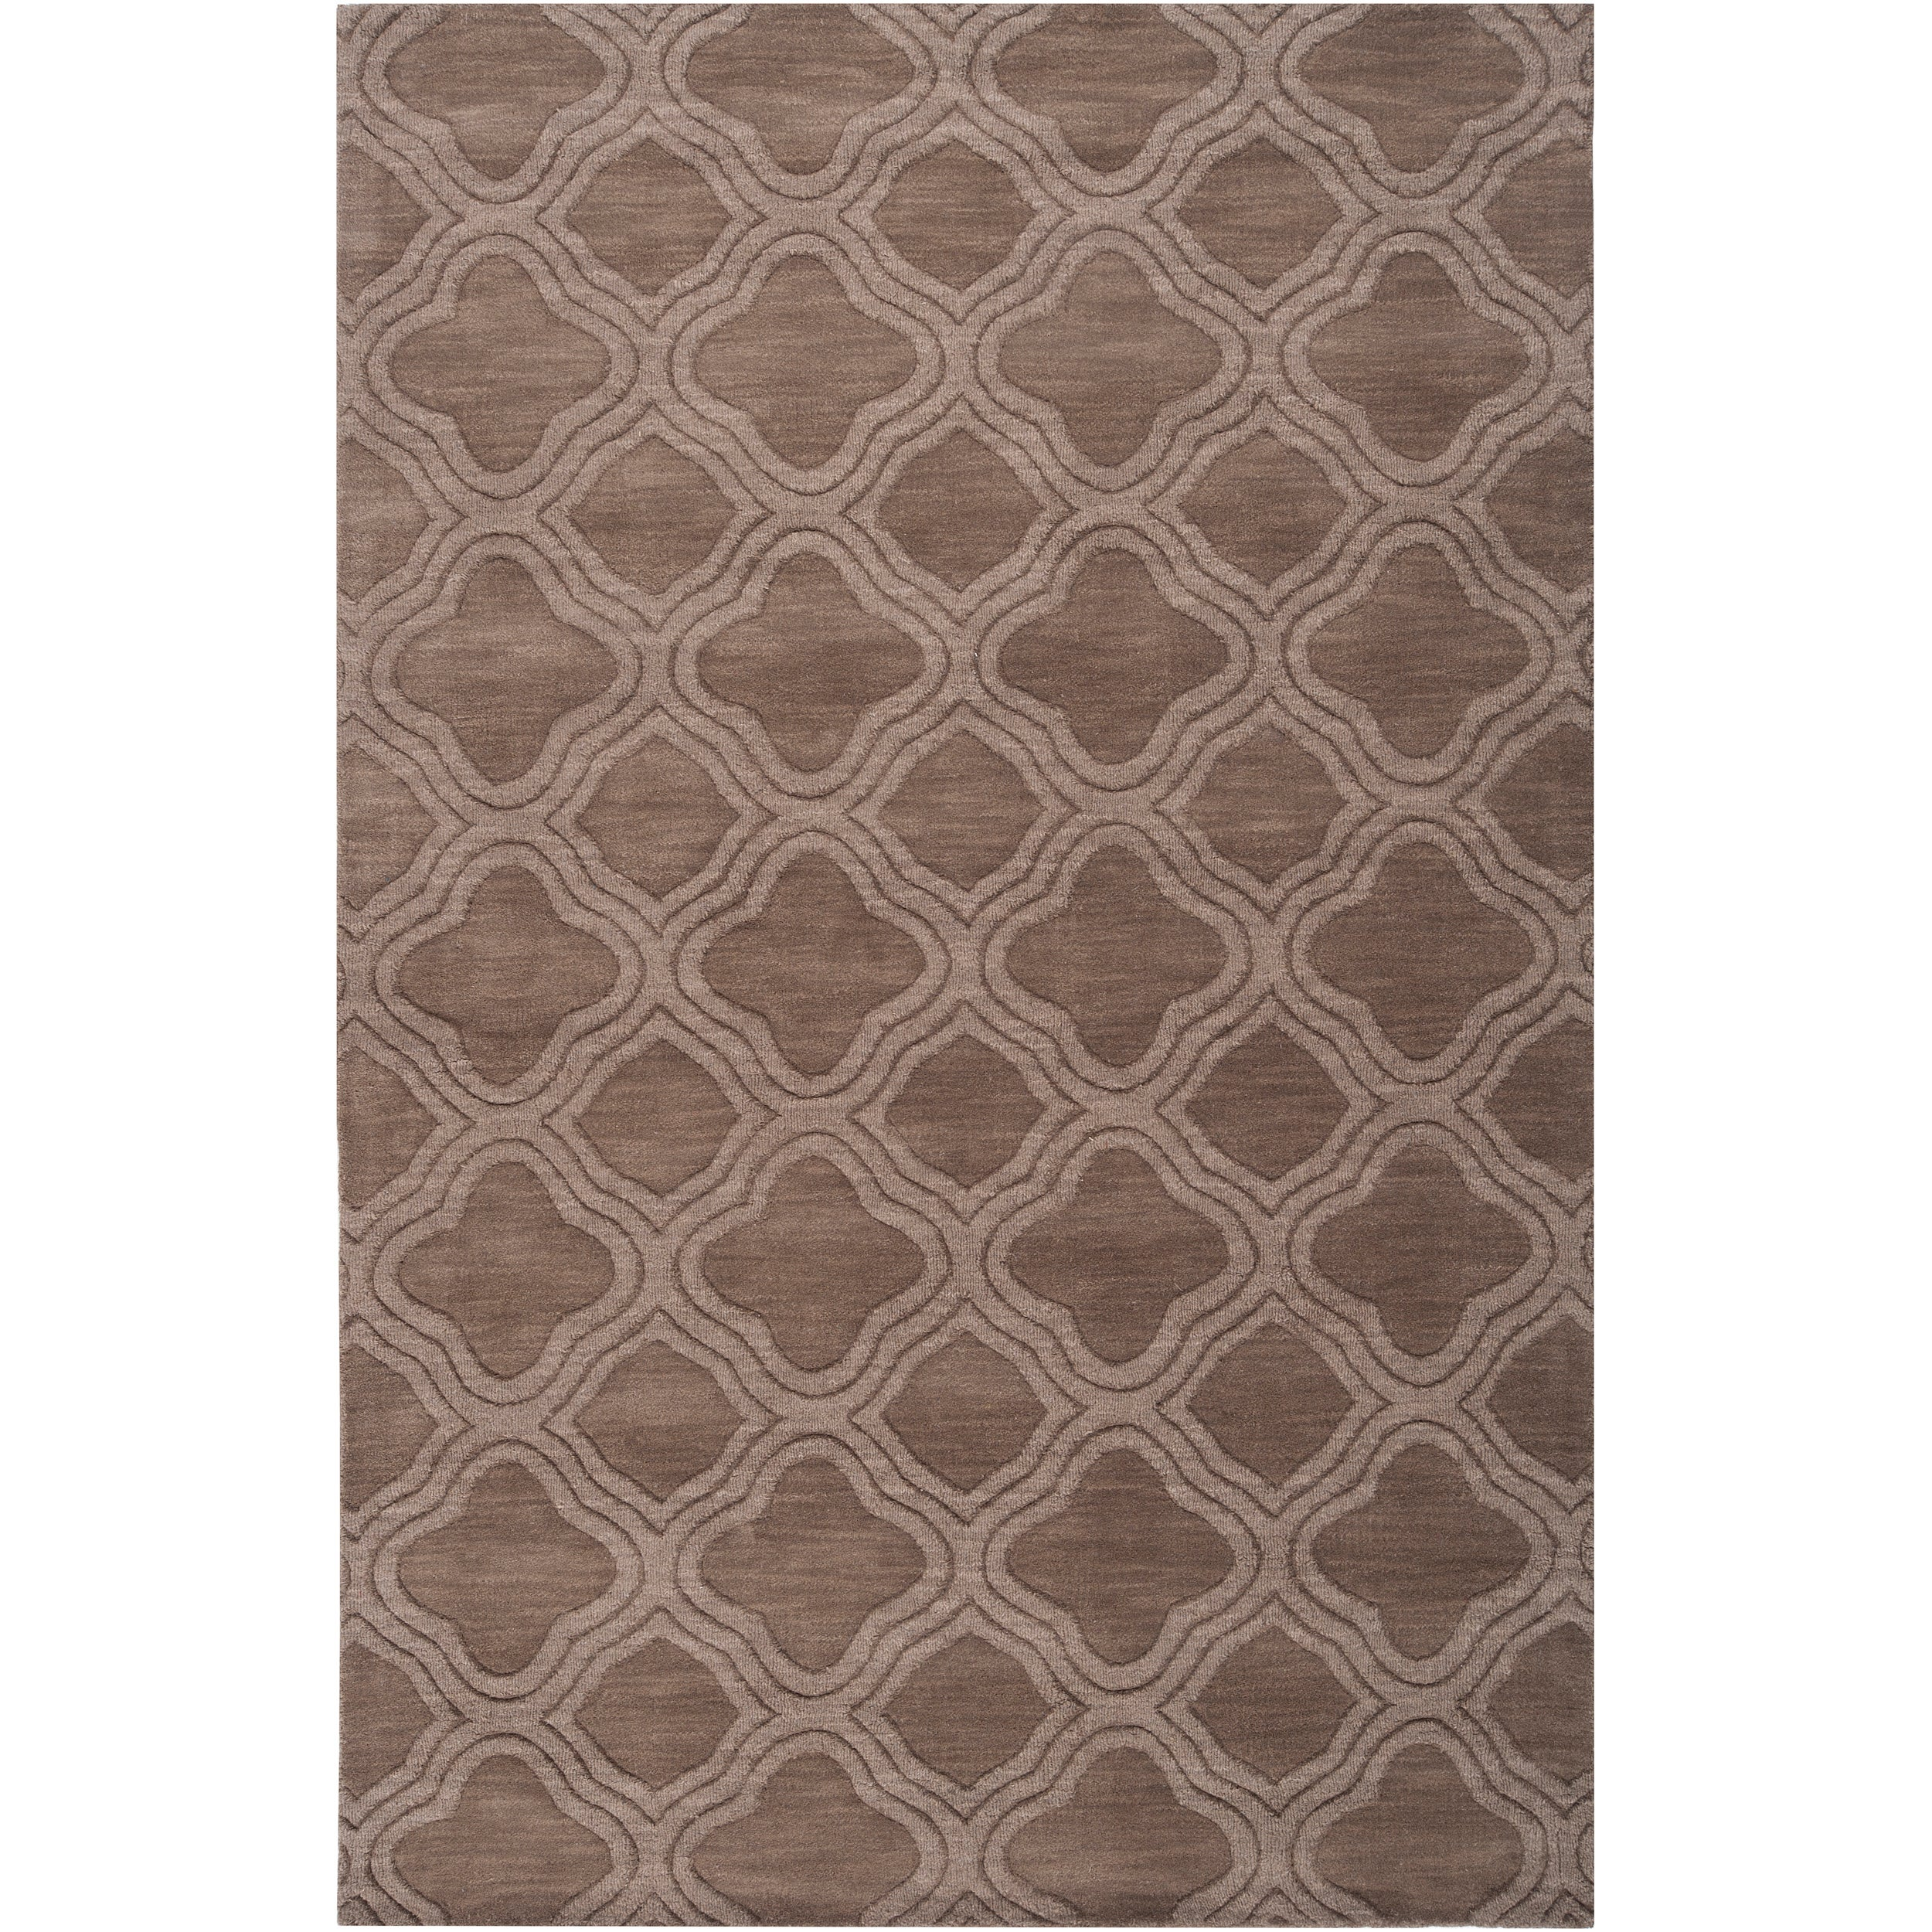 Hand-crafted Brownough Natural Wool Rug (2' x 3')